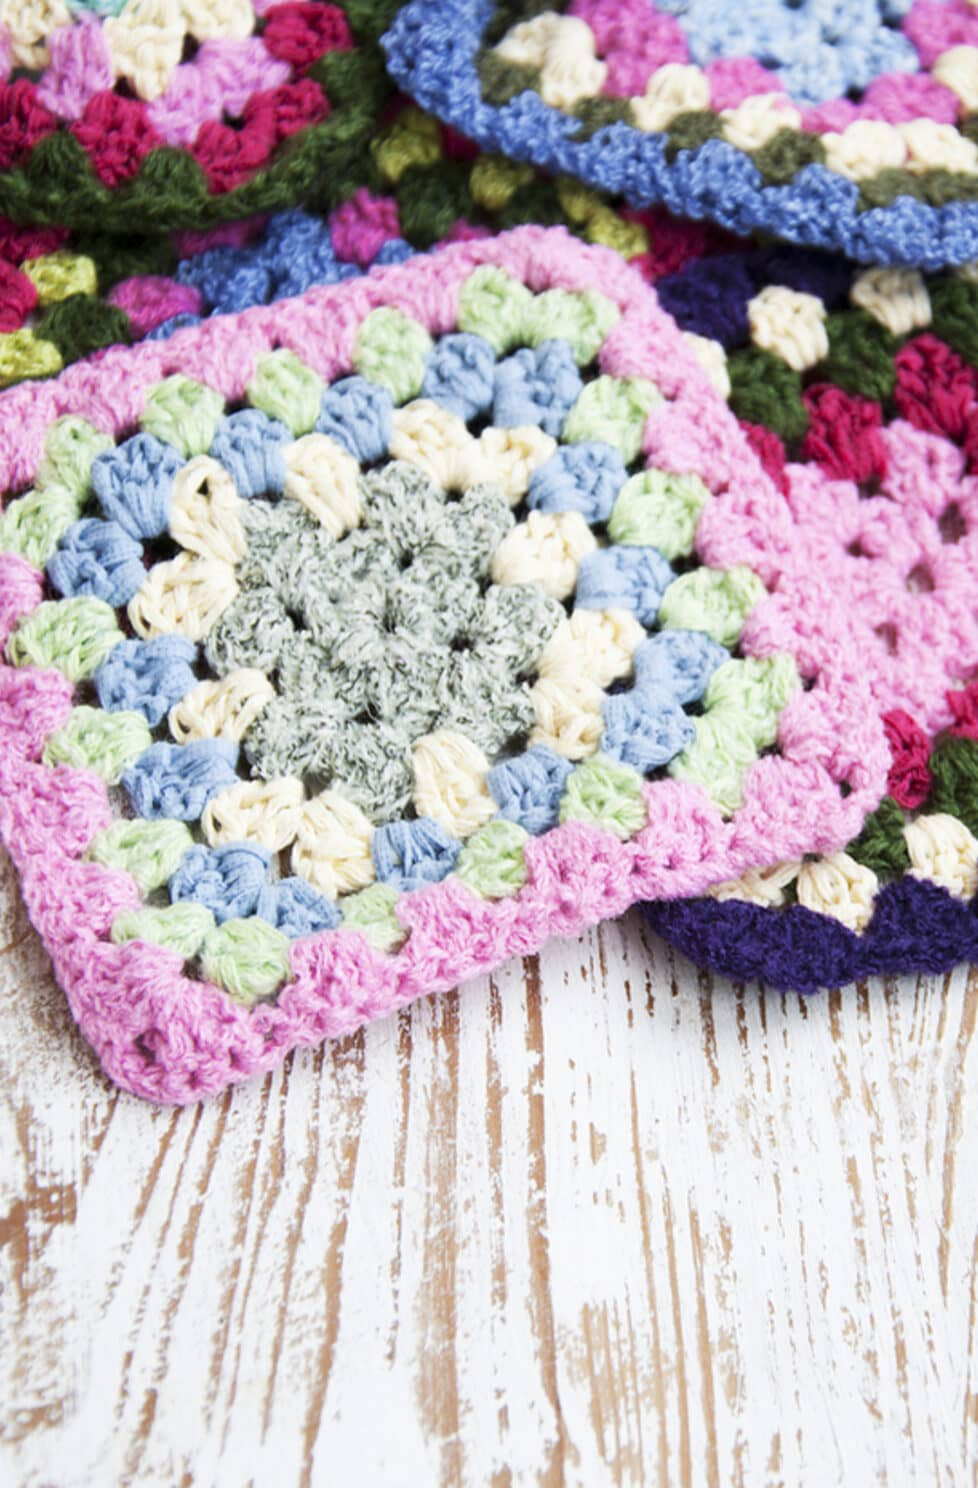 crochet squares made from colorful yarns